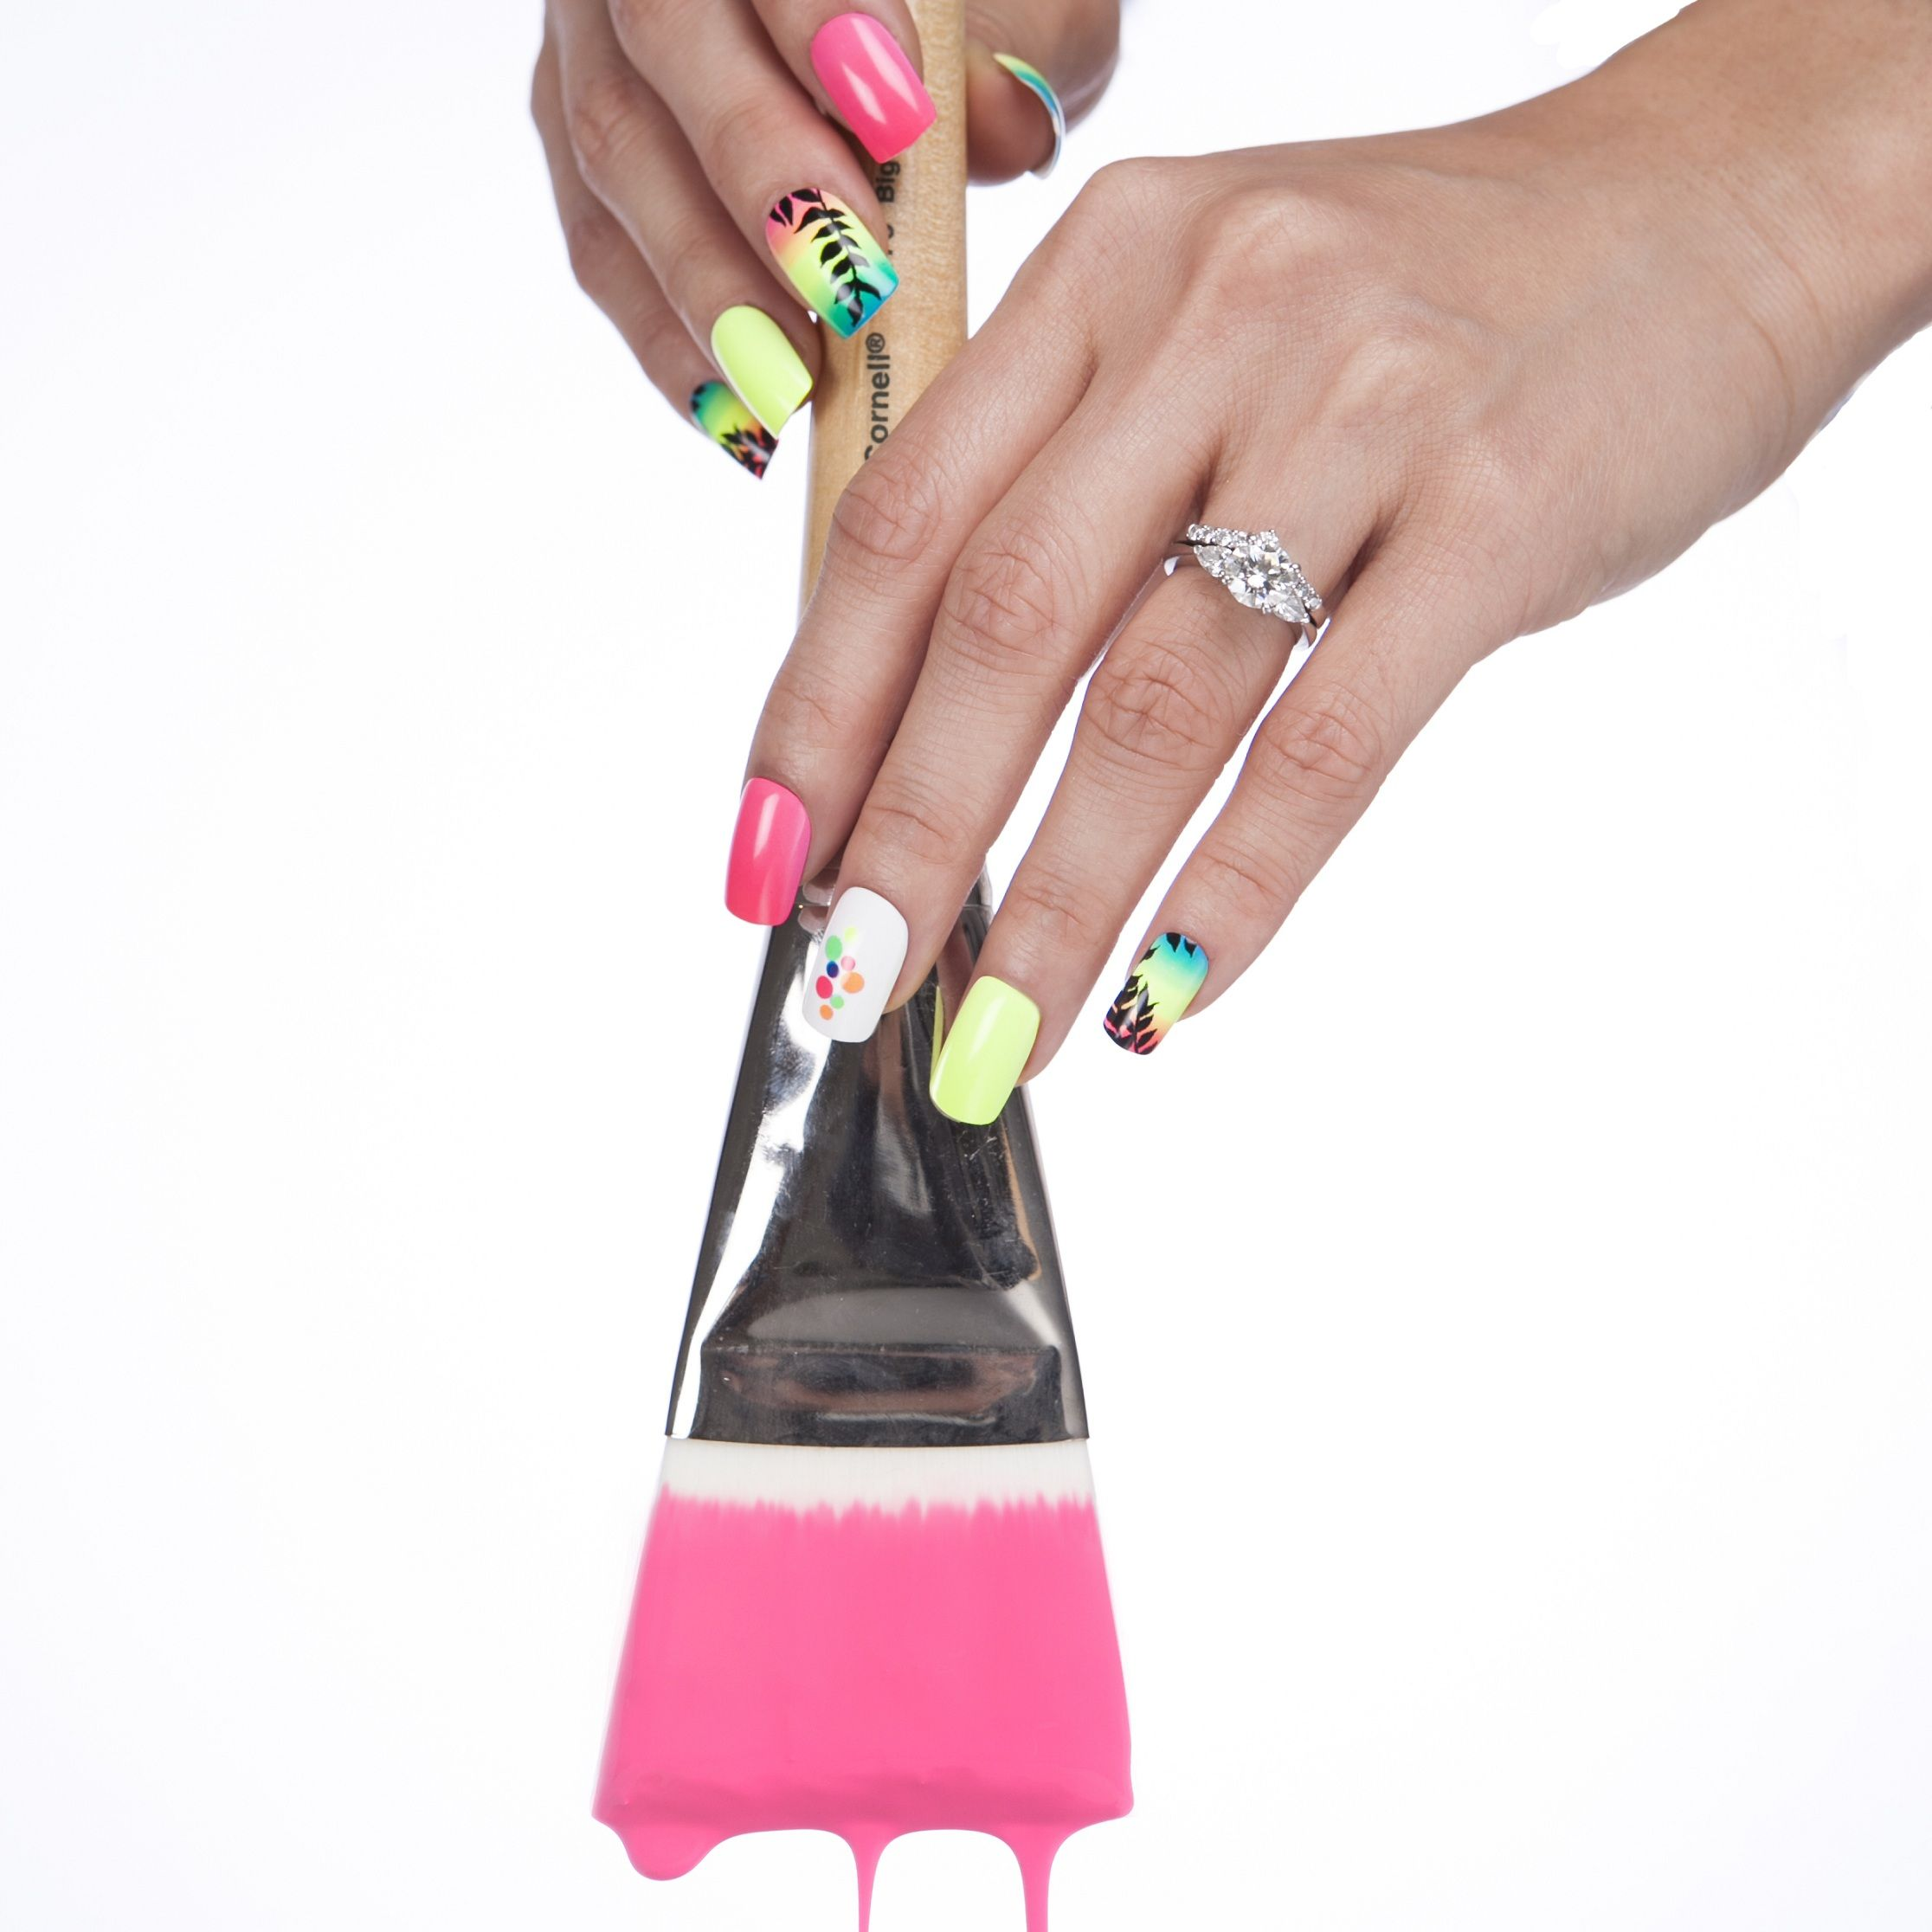 Nails by Ryoko designed this nail art for KISS—that could be you ...